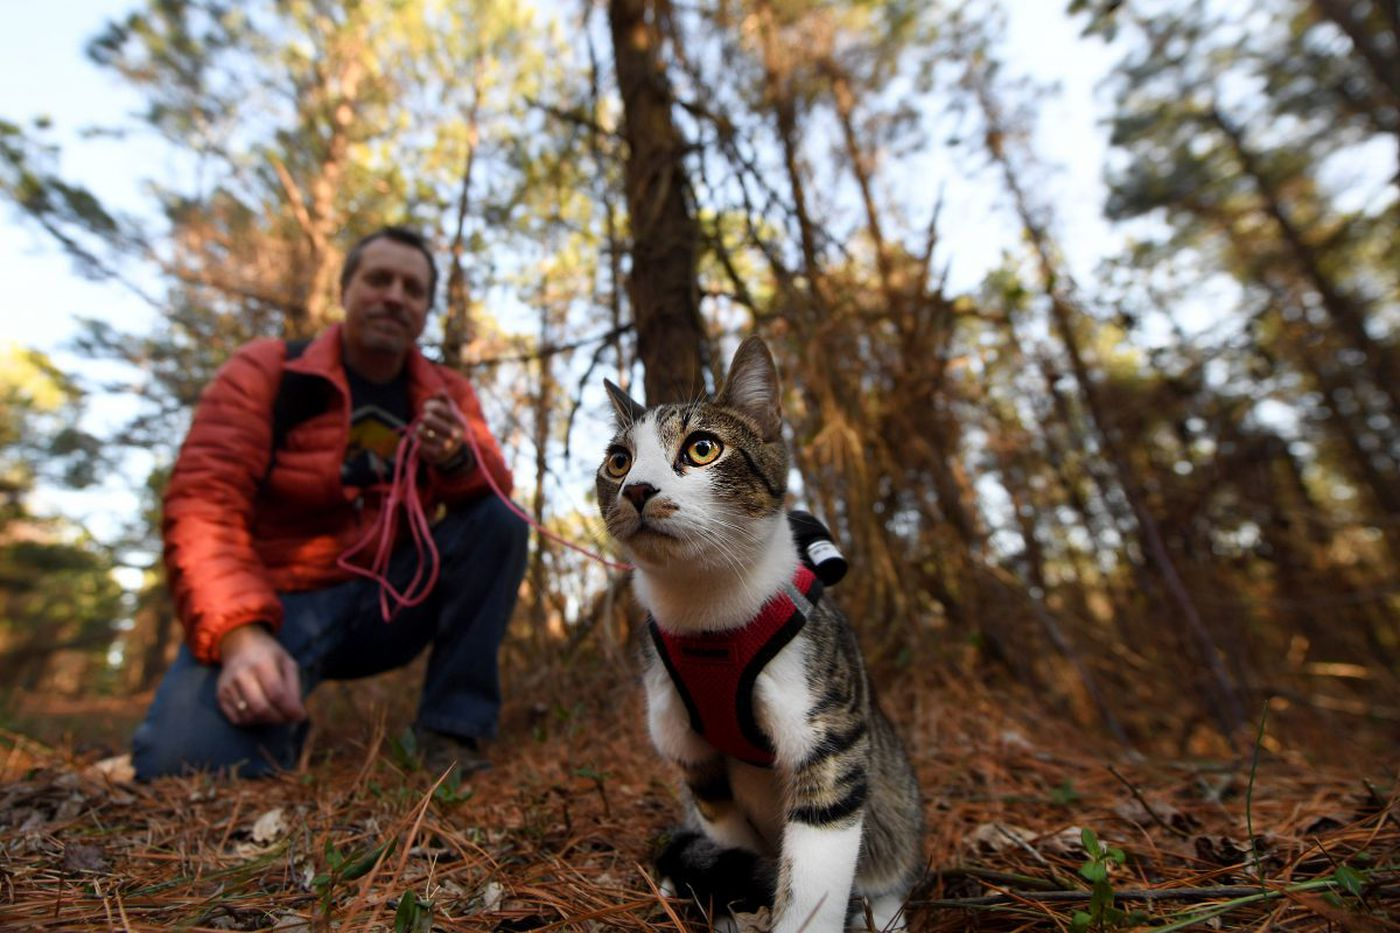 Buddy the adventure cat steps into the great outdoors